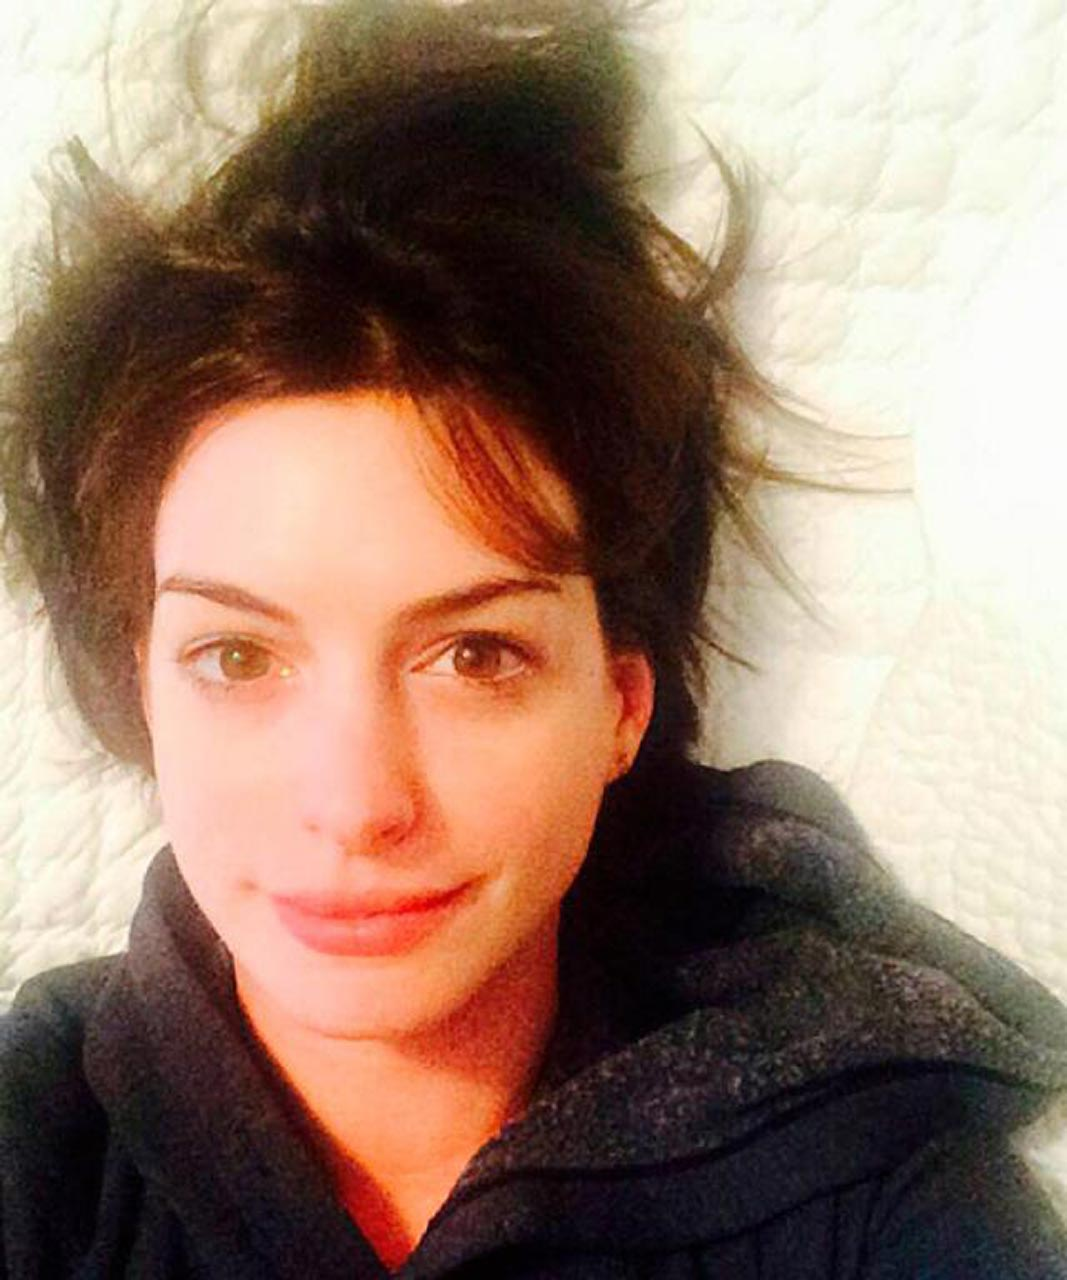 Anne Hathaway Nude Leaked Photos ! - Scandal Planet